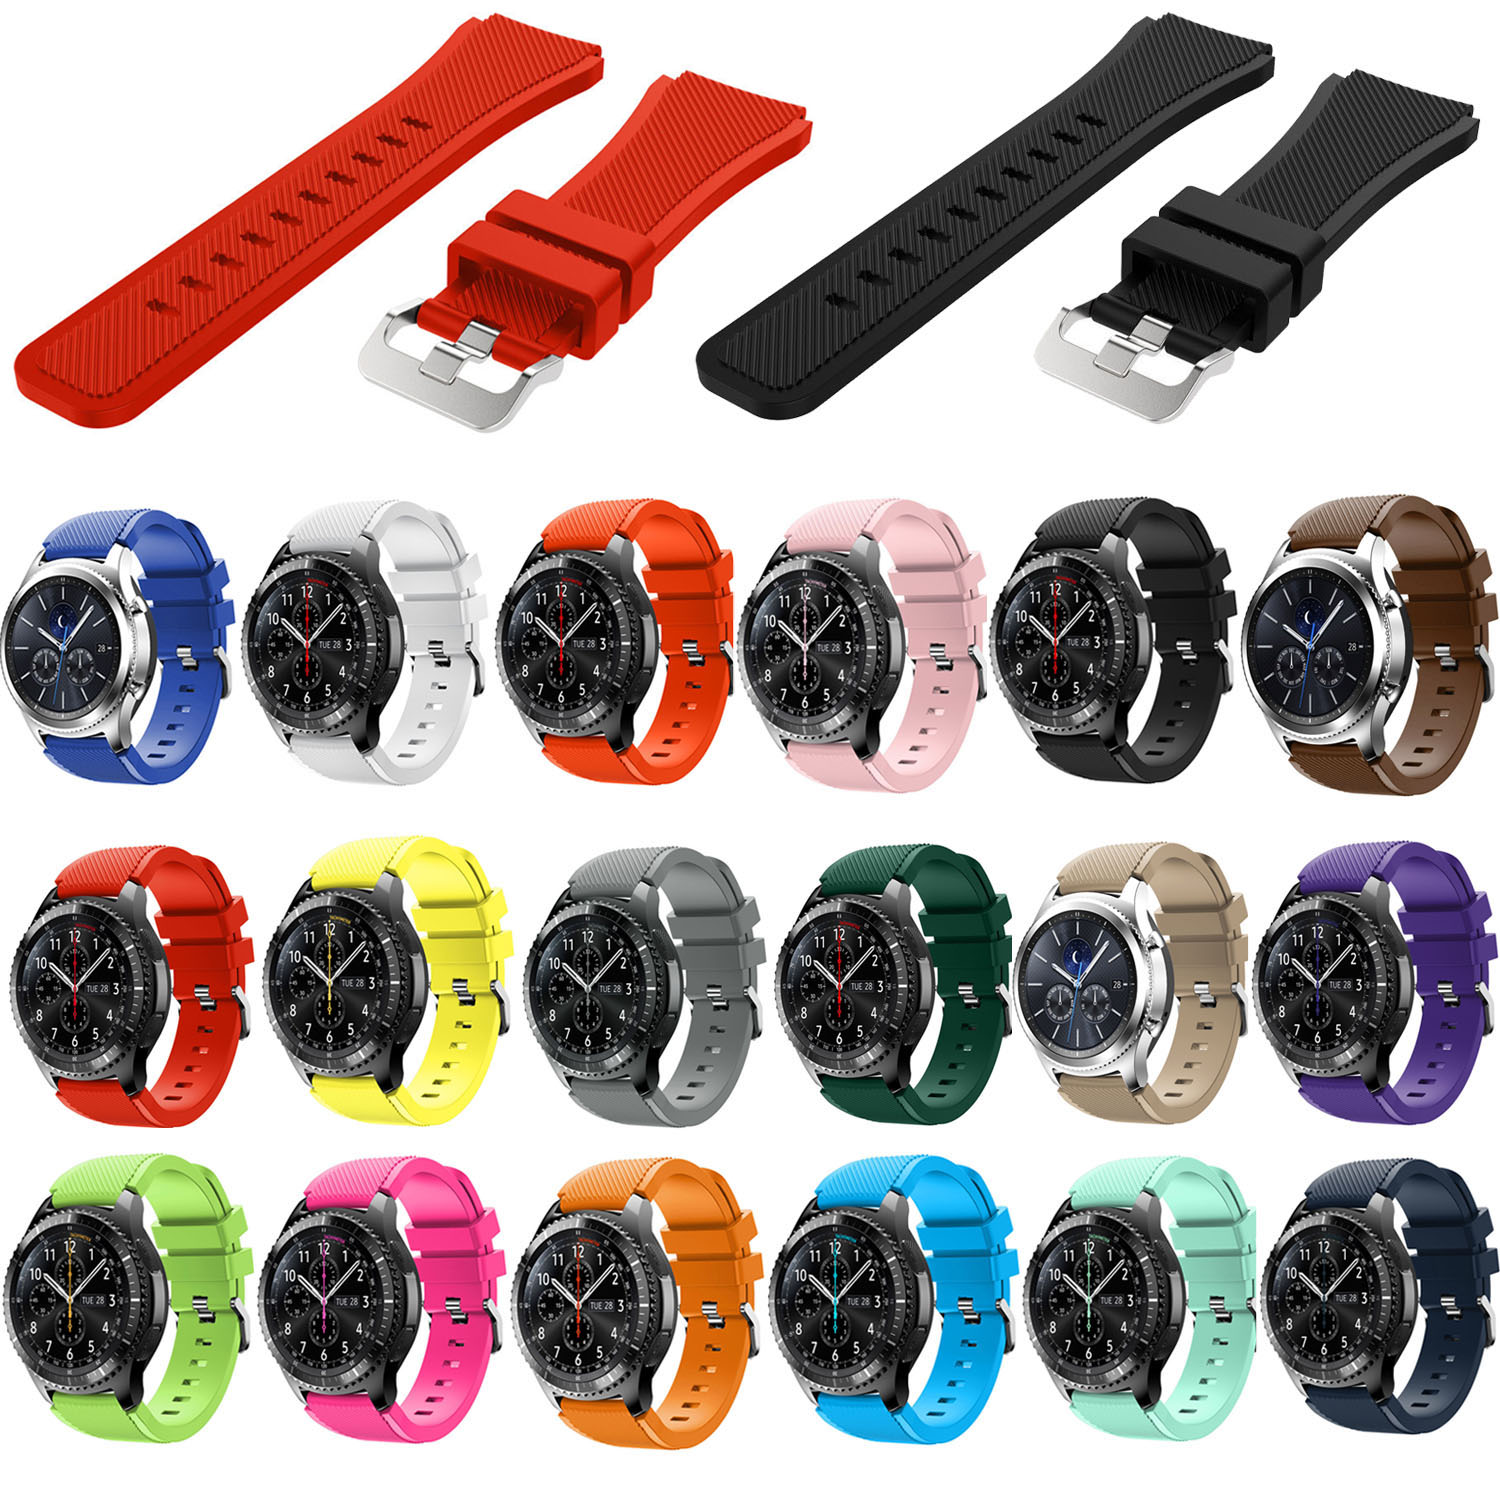 22mm Sports Silicone Watch Band For Samsung Gear S3 Frontier/Classic Strap For Xiaomi Huami Amazfit Pace/Stratos 2/1 Wristbands